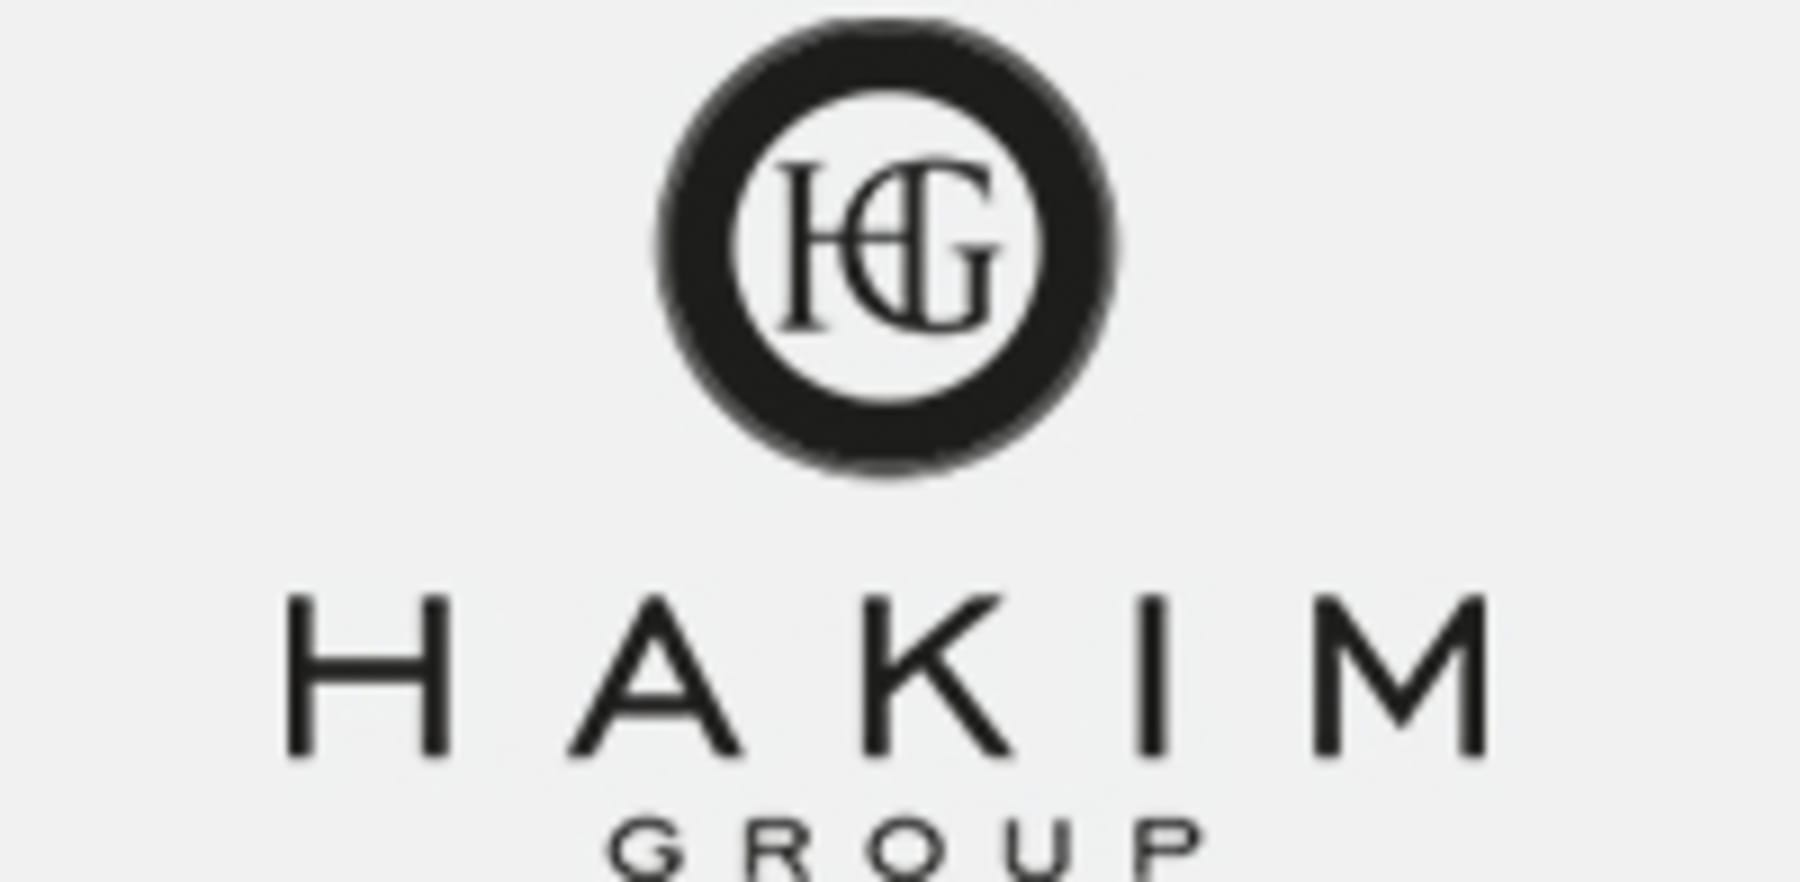 The Hakim Group